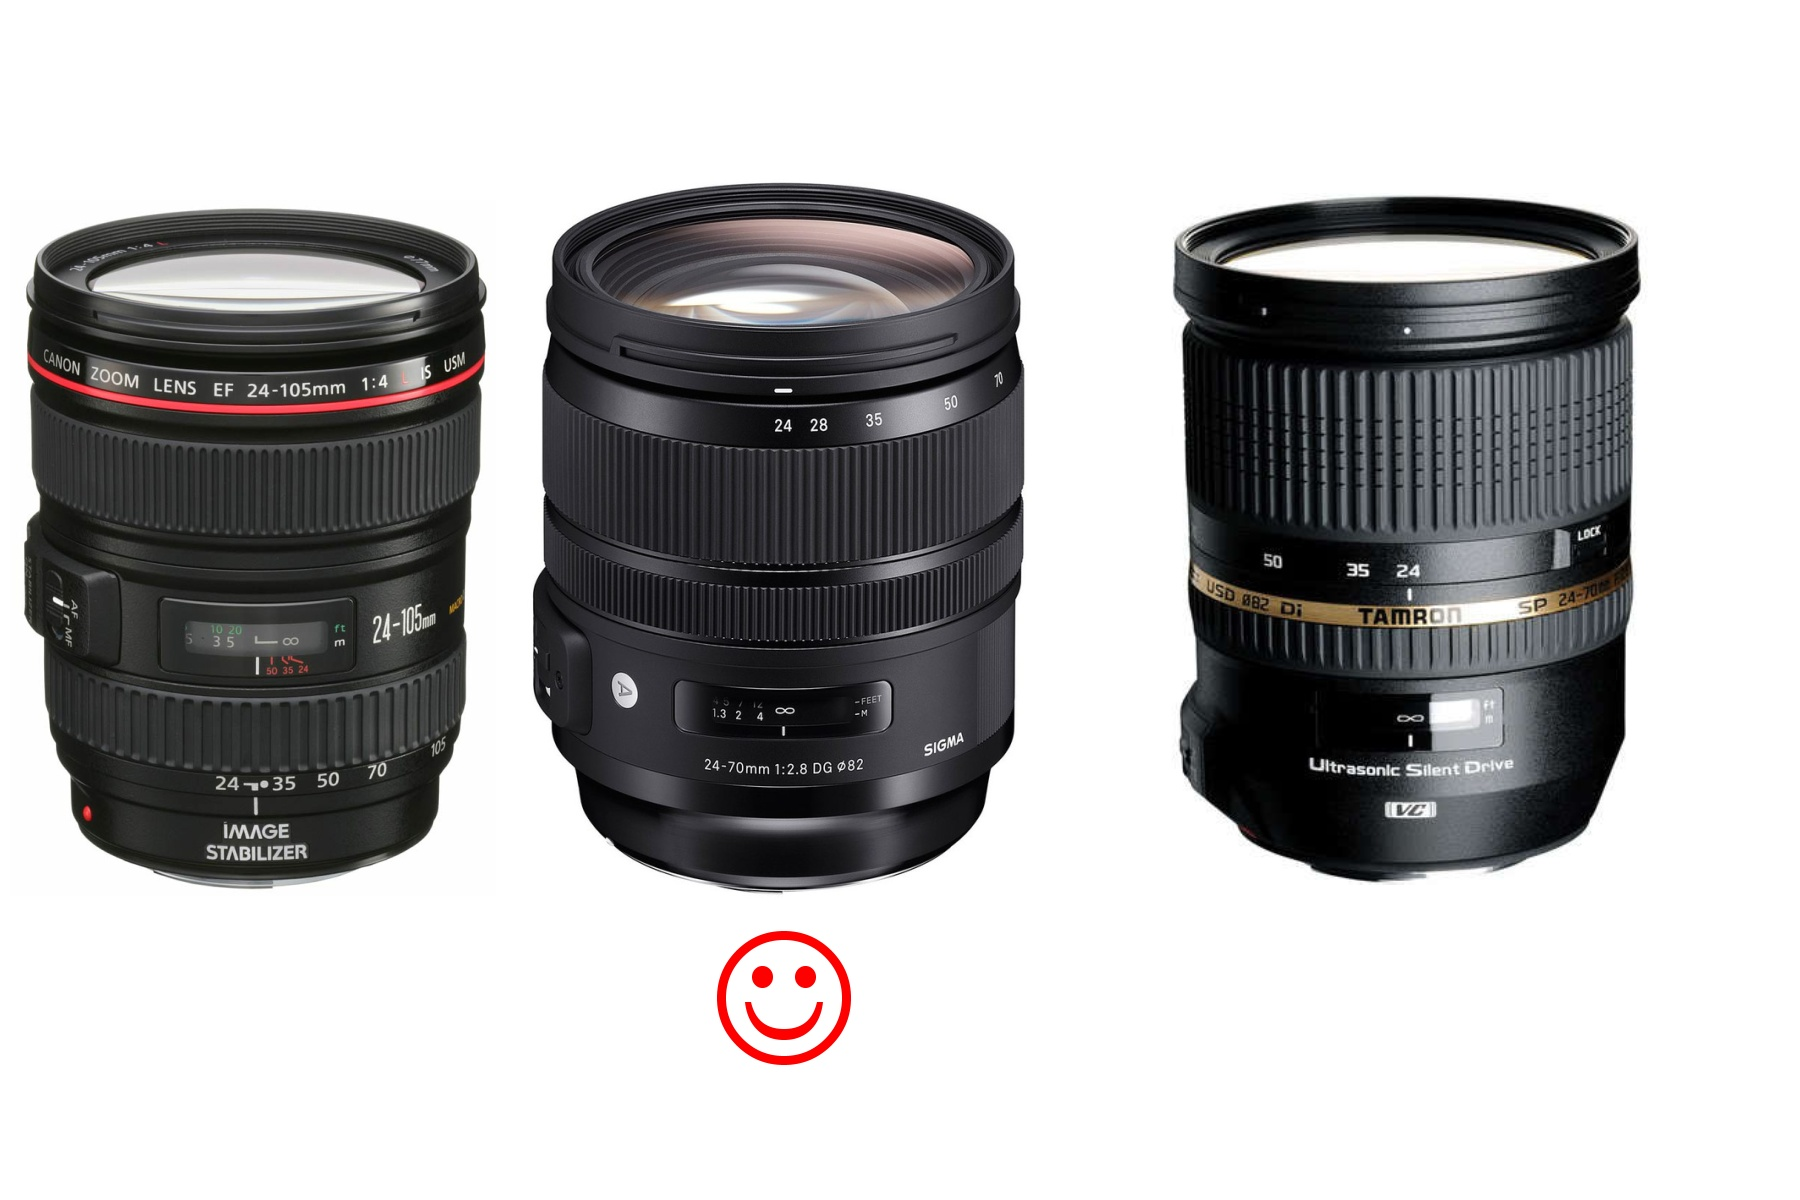 Canon 24-105 f4,0 vs. Sigma 24-70 f2,8 Art  vs. Tamron 24-70 f2,8